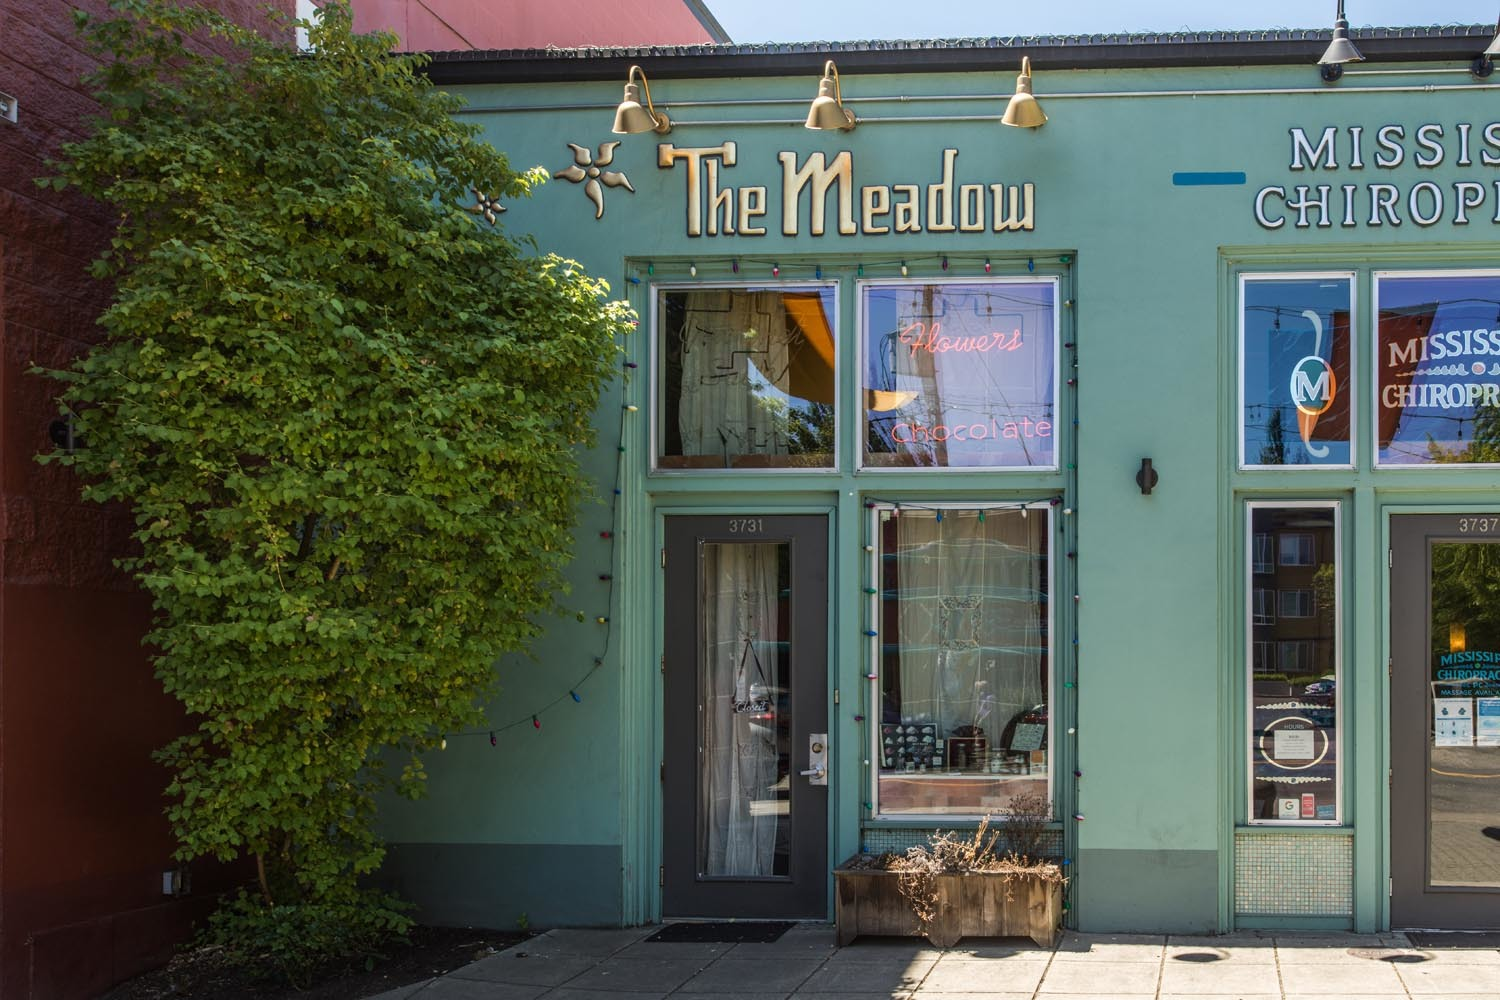 exterior of Tin Meadow teal storefront